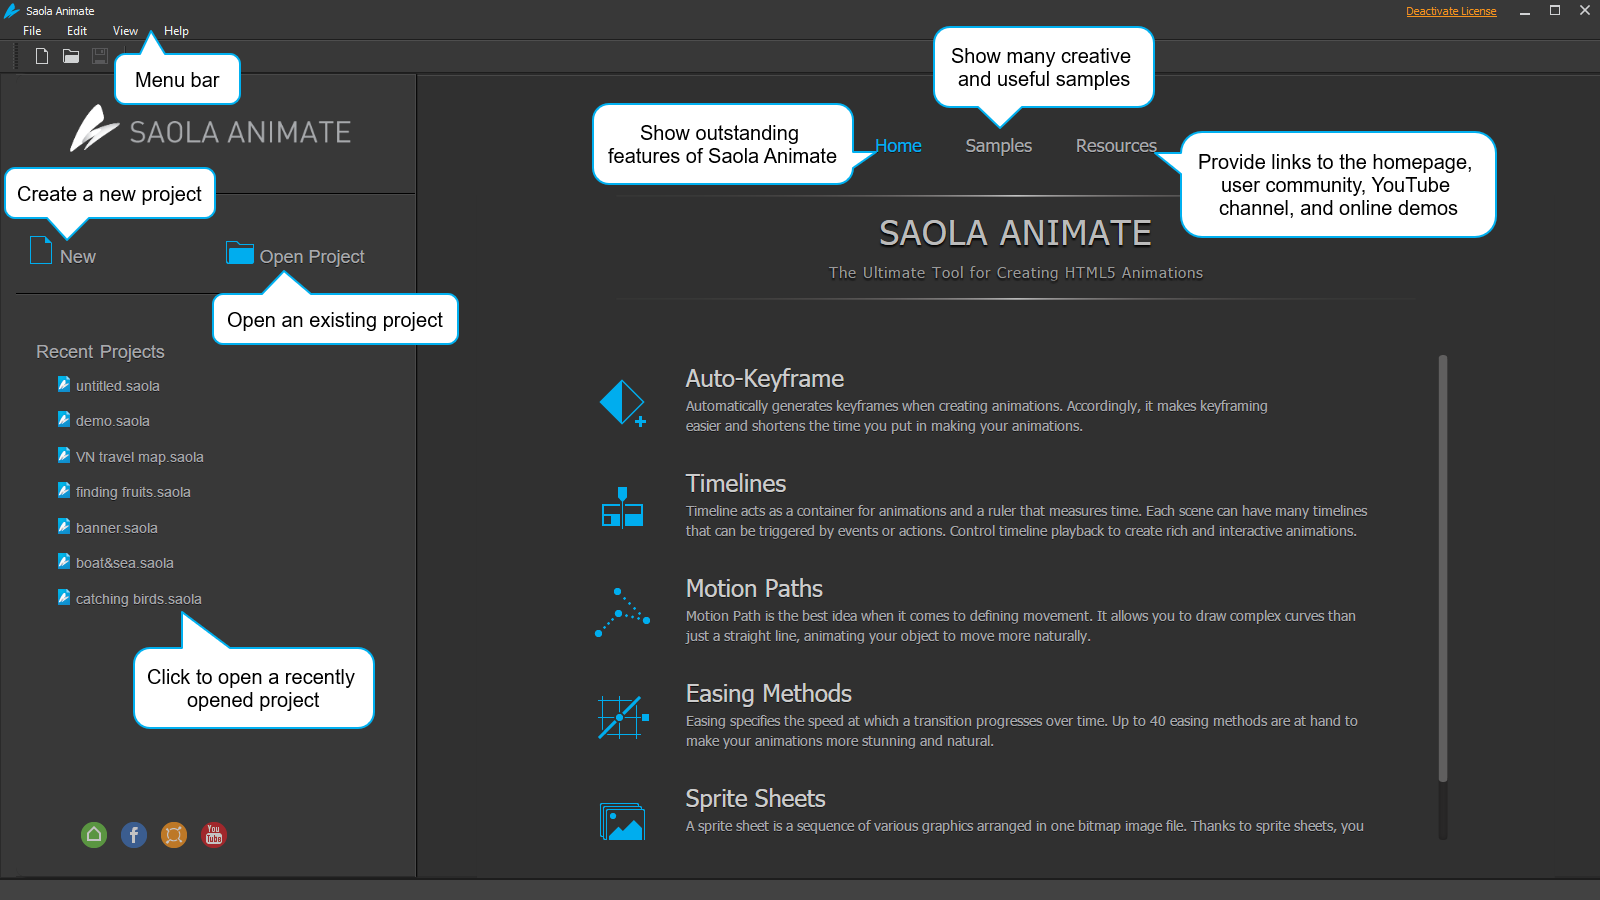 Saola Animate Beginner's Guide - HTML5 Animation Software